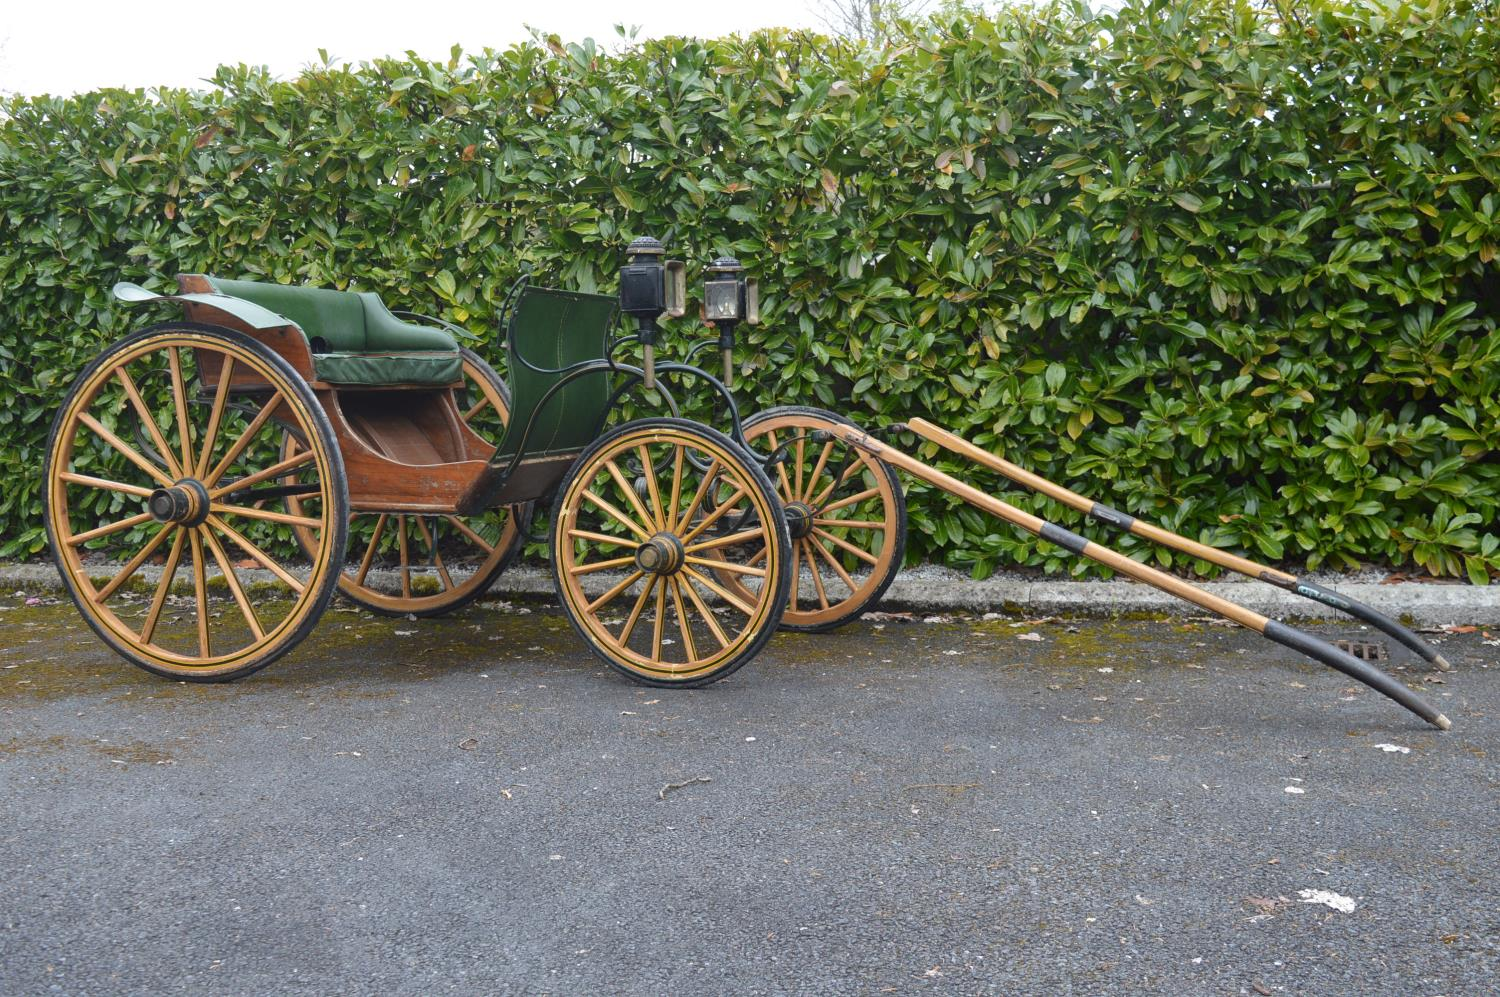 19th C. horse drawn carriage. - Image 2 of 5